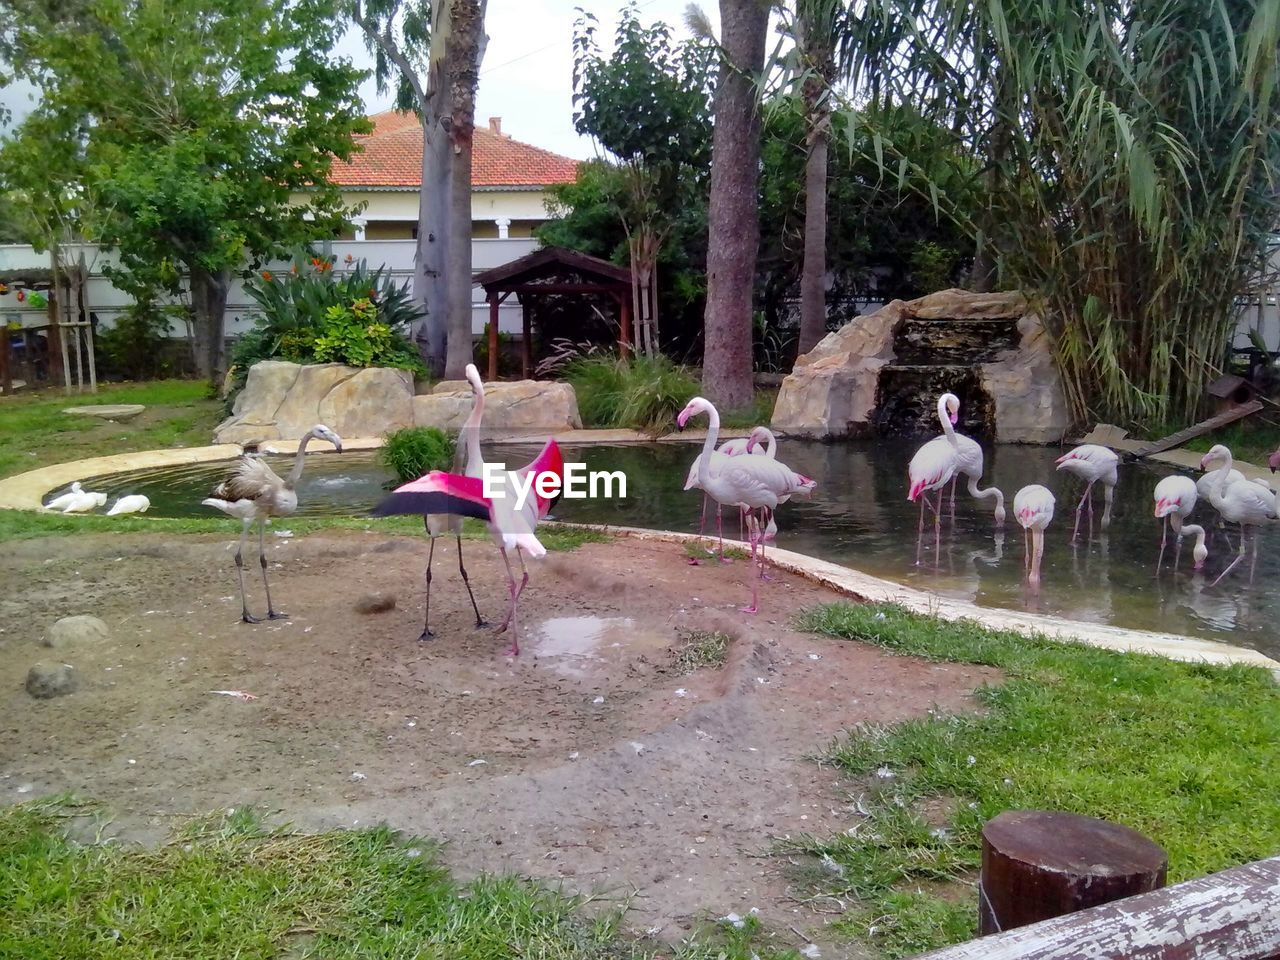 tree, animal themes, day, nature, large group of animals, outdoors, bird, flamingo, no people, growth, mammal, domestic animals, grass, beauty in nature, sky